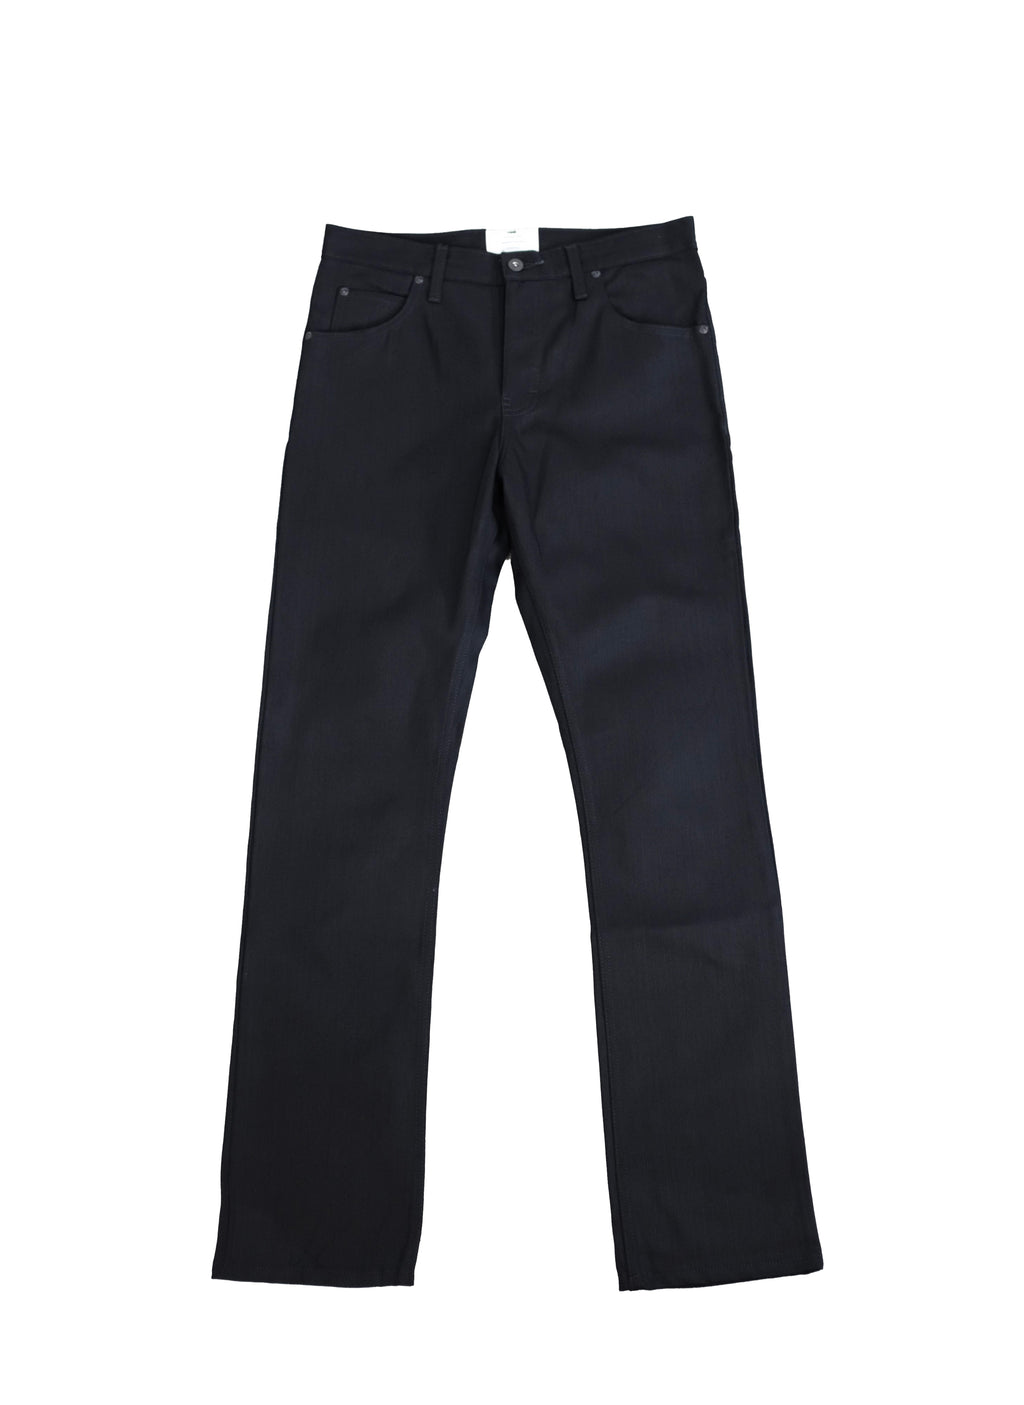 PALMER TRADING COMPANY FOR DICKIES / PALMER 5-POCKET JEAN